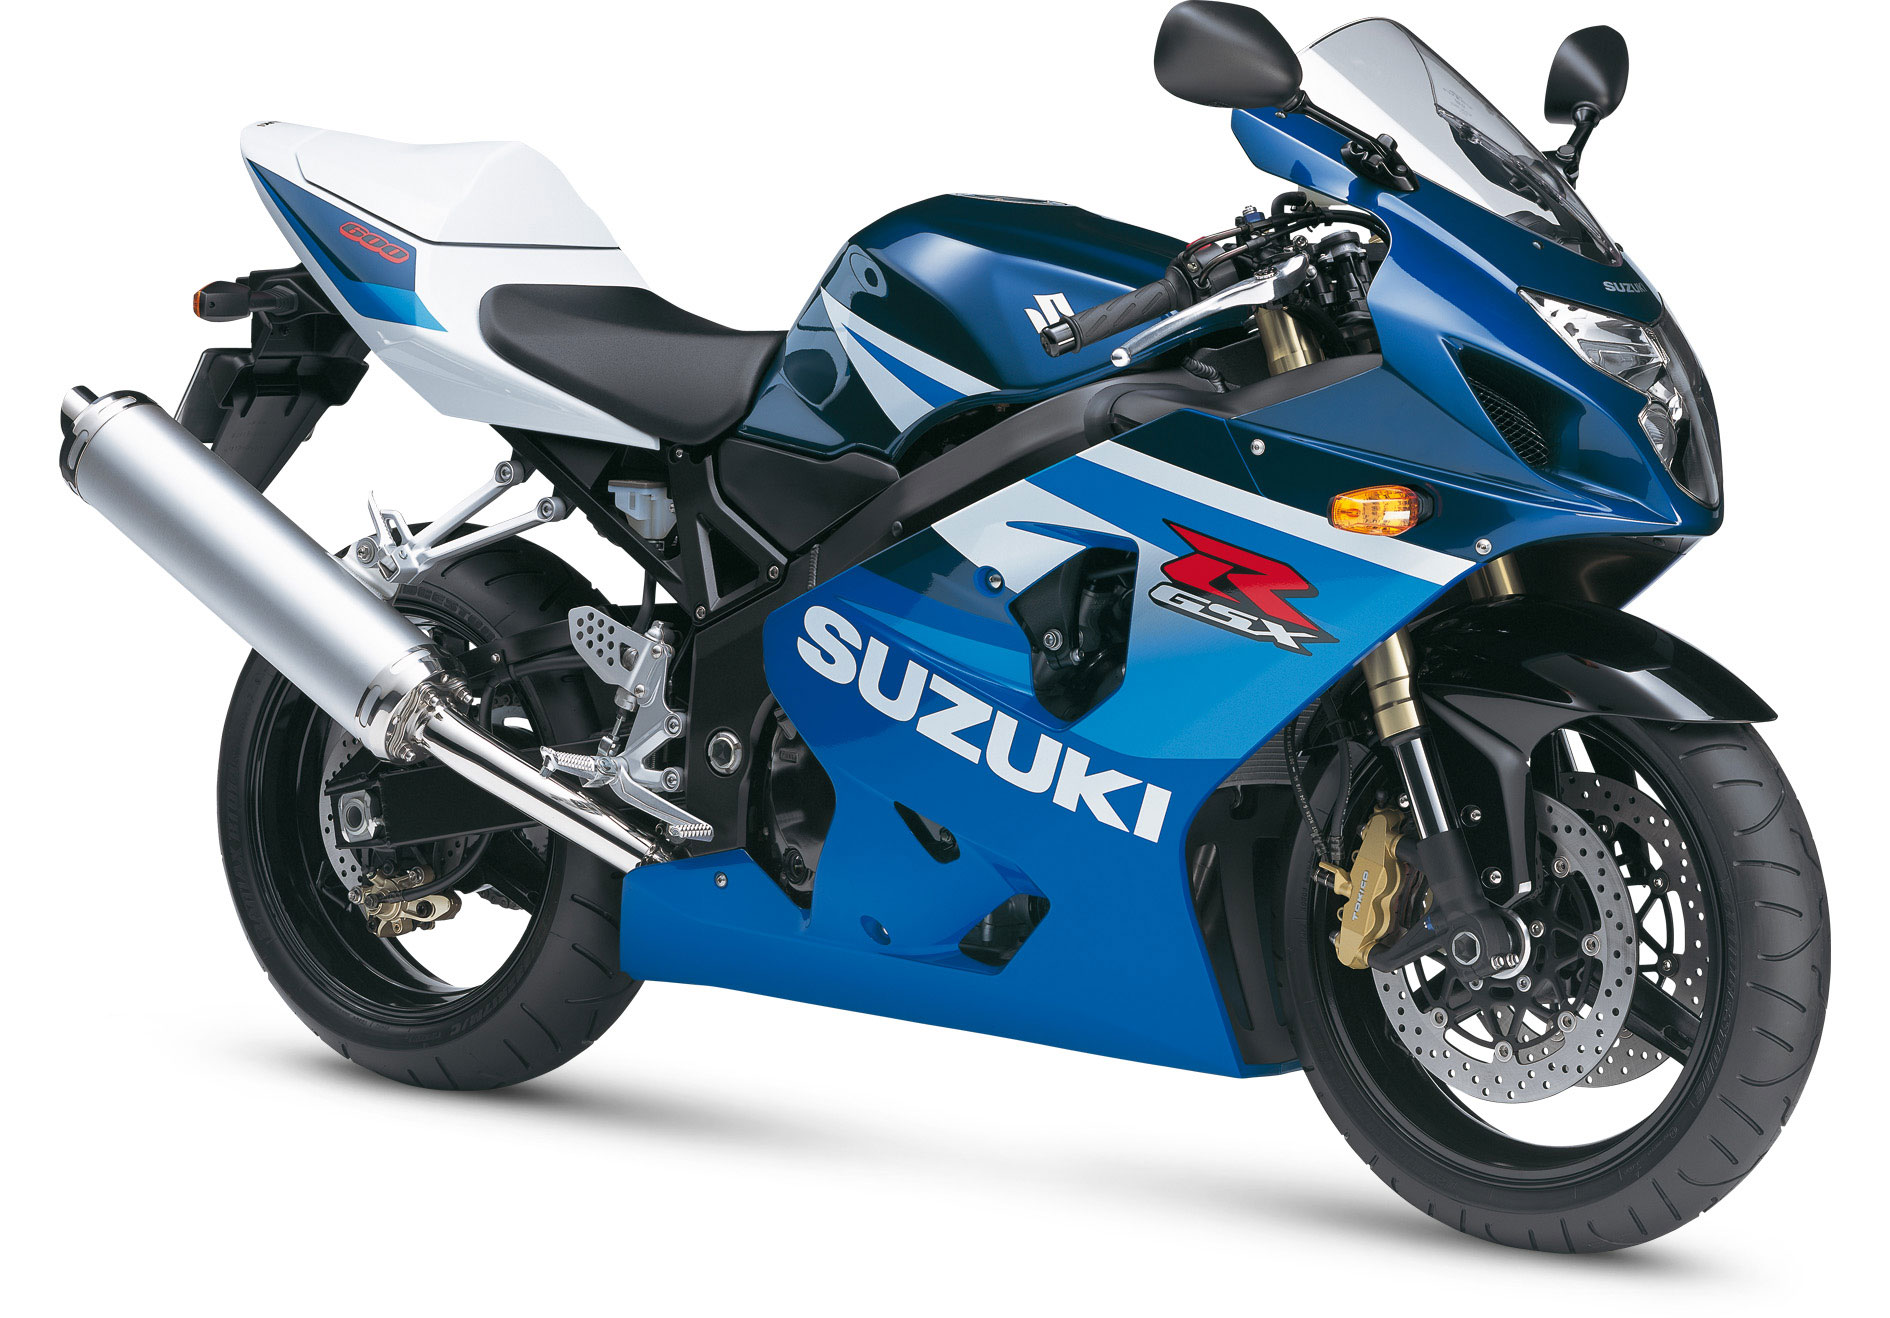 2006 suzuki gsx r 600 20th anniversary moto zombdrive com. Black Bedroom Furniture Sets. Home Design Ideas